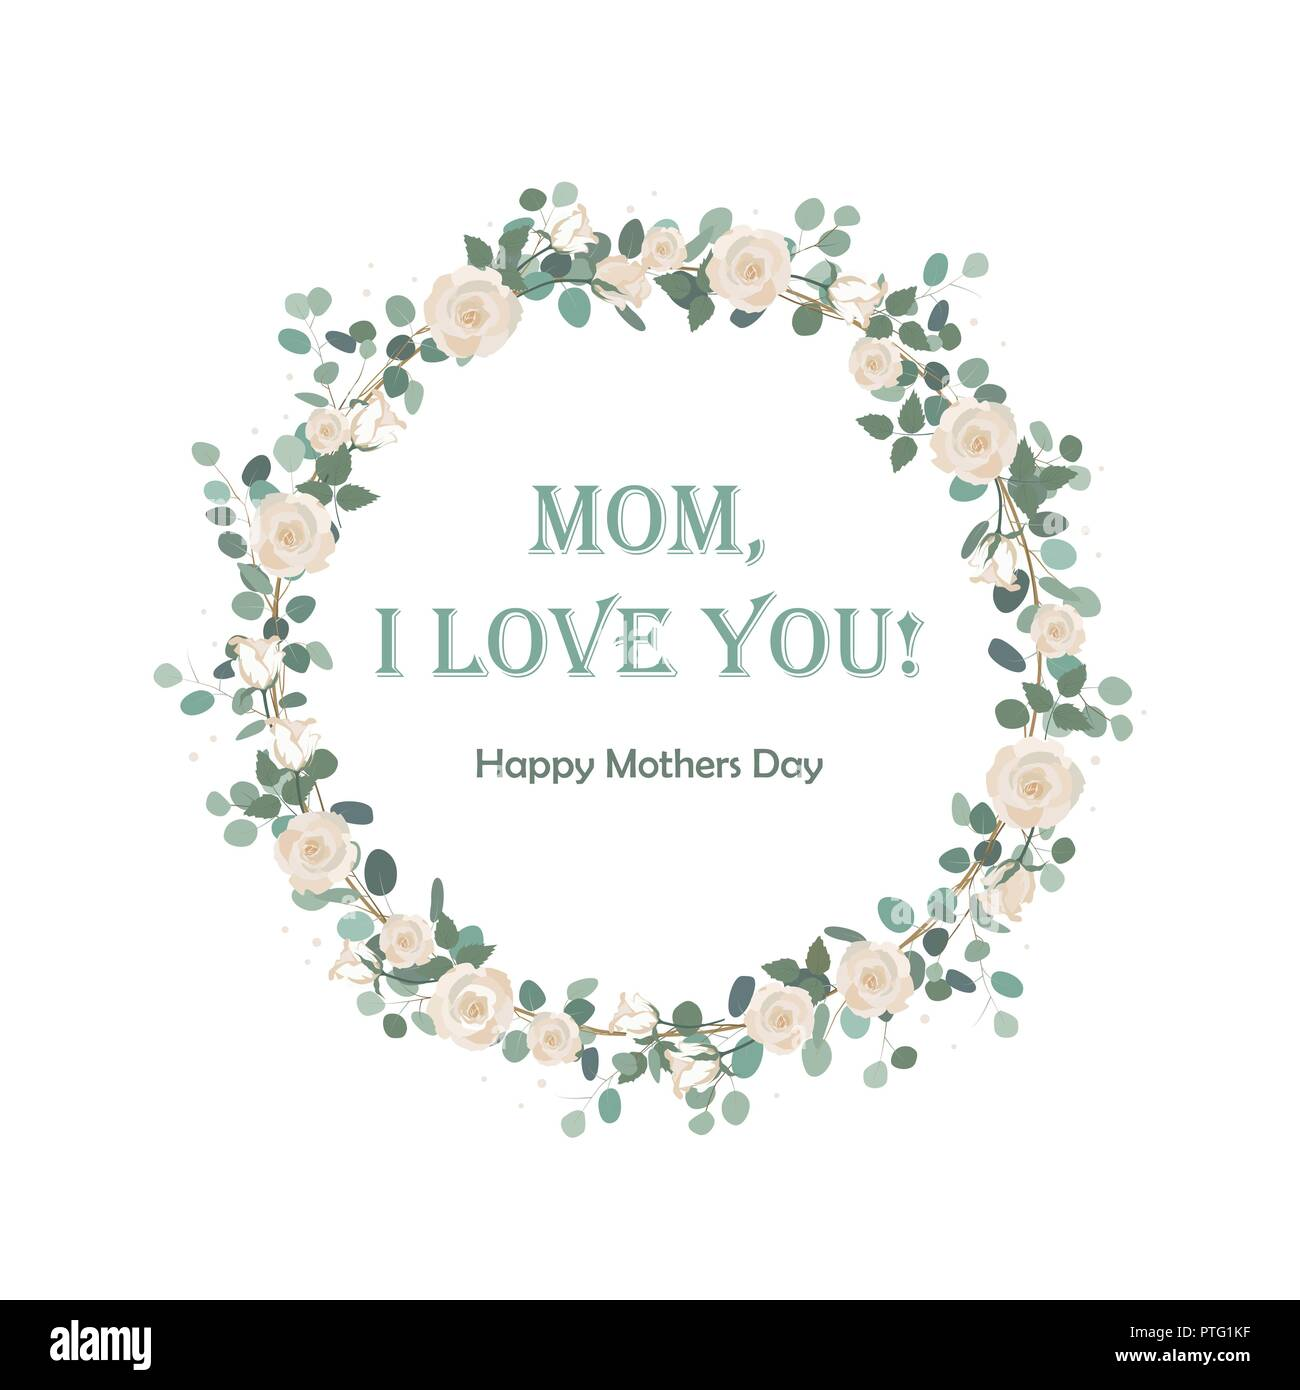 Happy Mother's Day beautiful card with floral Eucalyptus wreath. Background for Mother's day celebration. Greeting, wedding invite template. Round fra - Stock Image